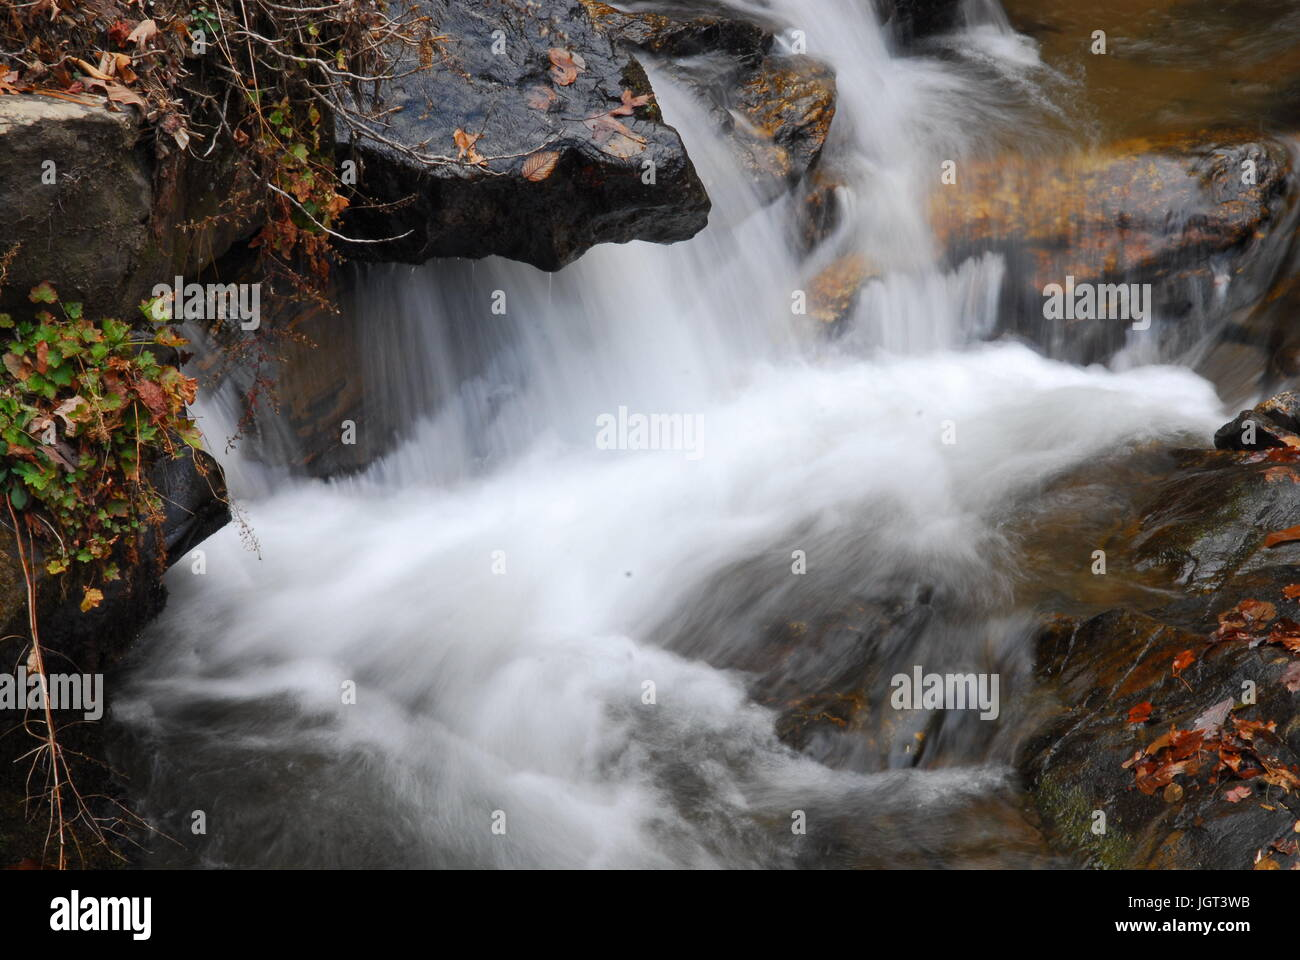 water flowing thru rocks in the mountains - Stock Image